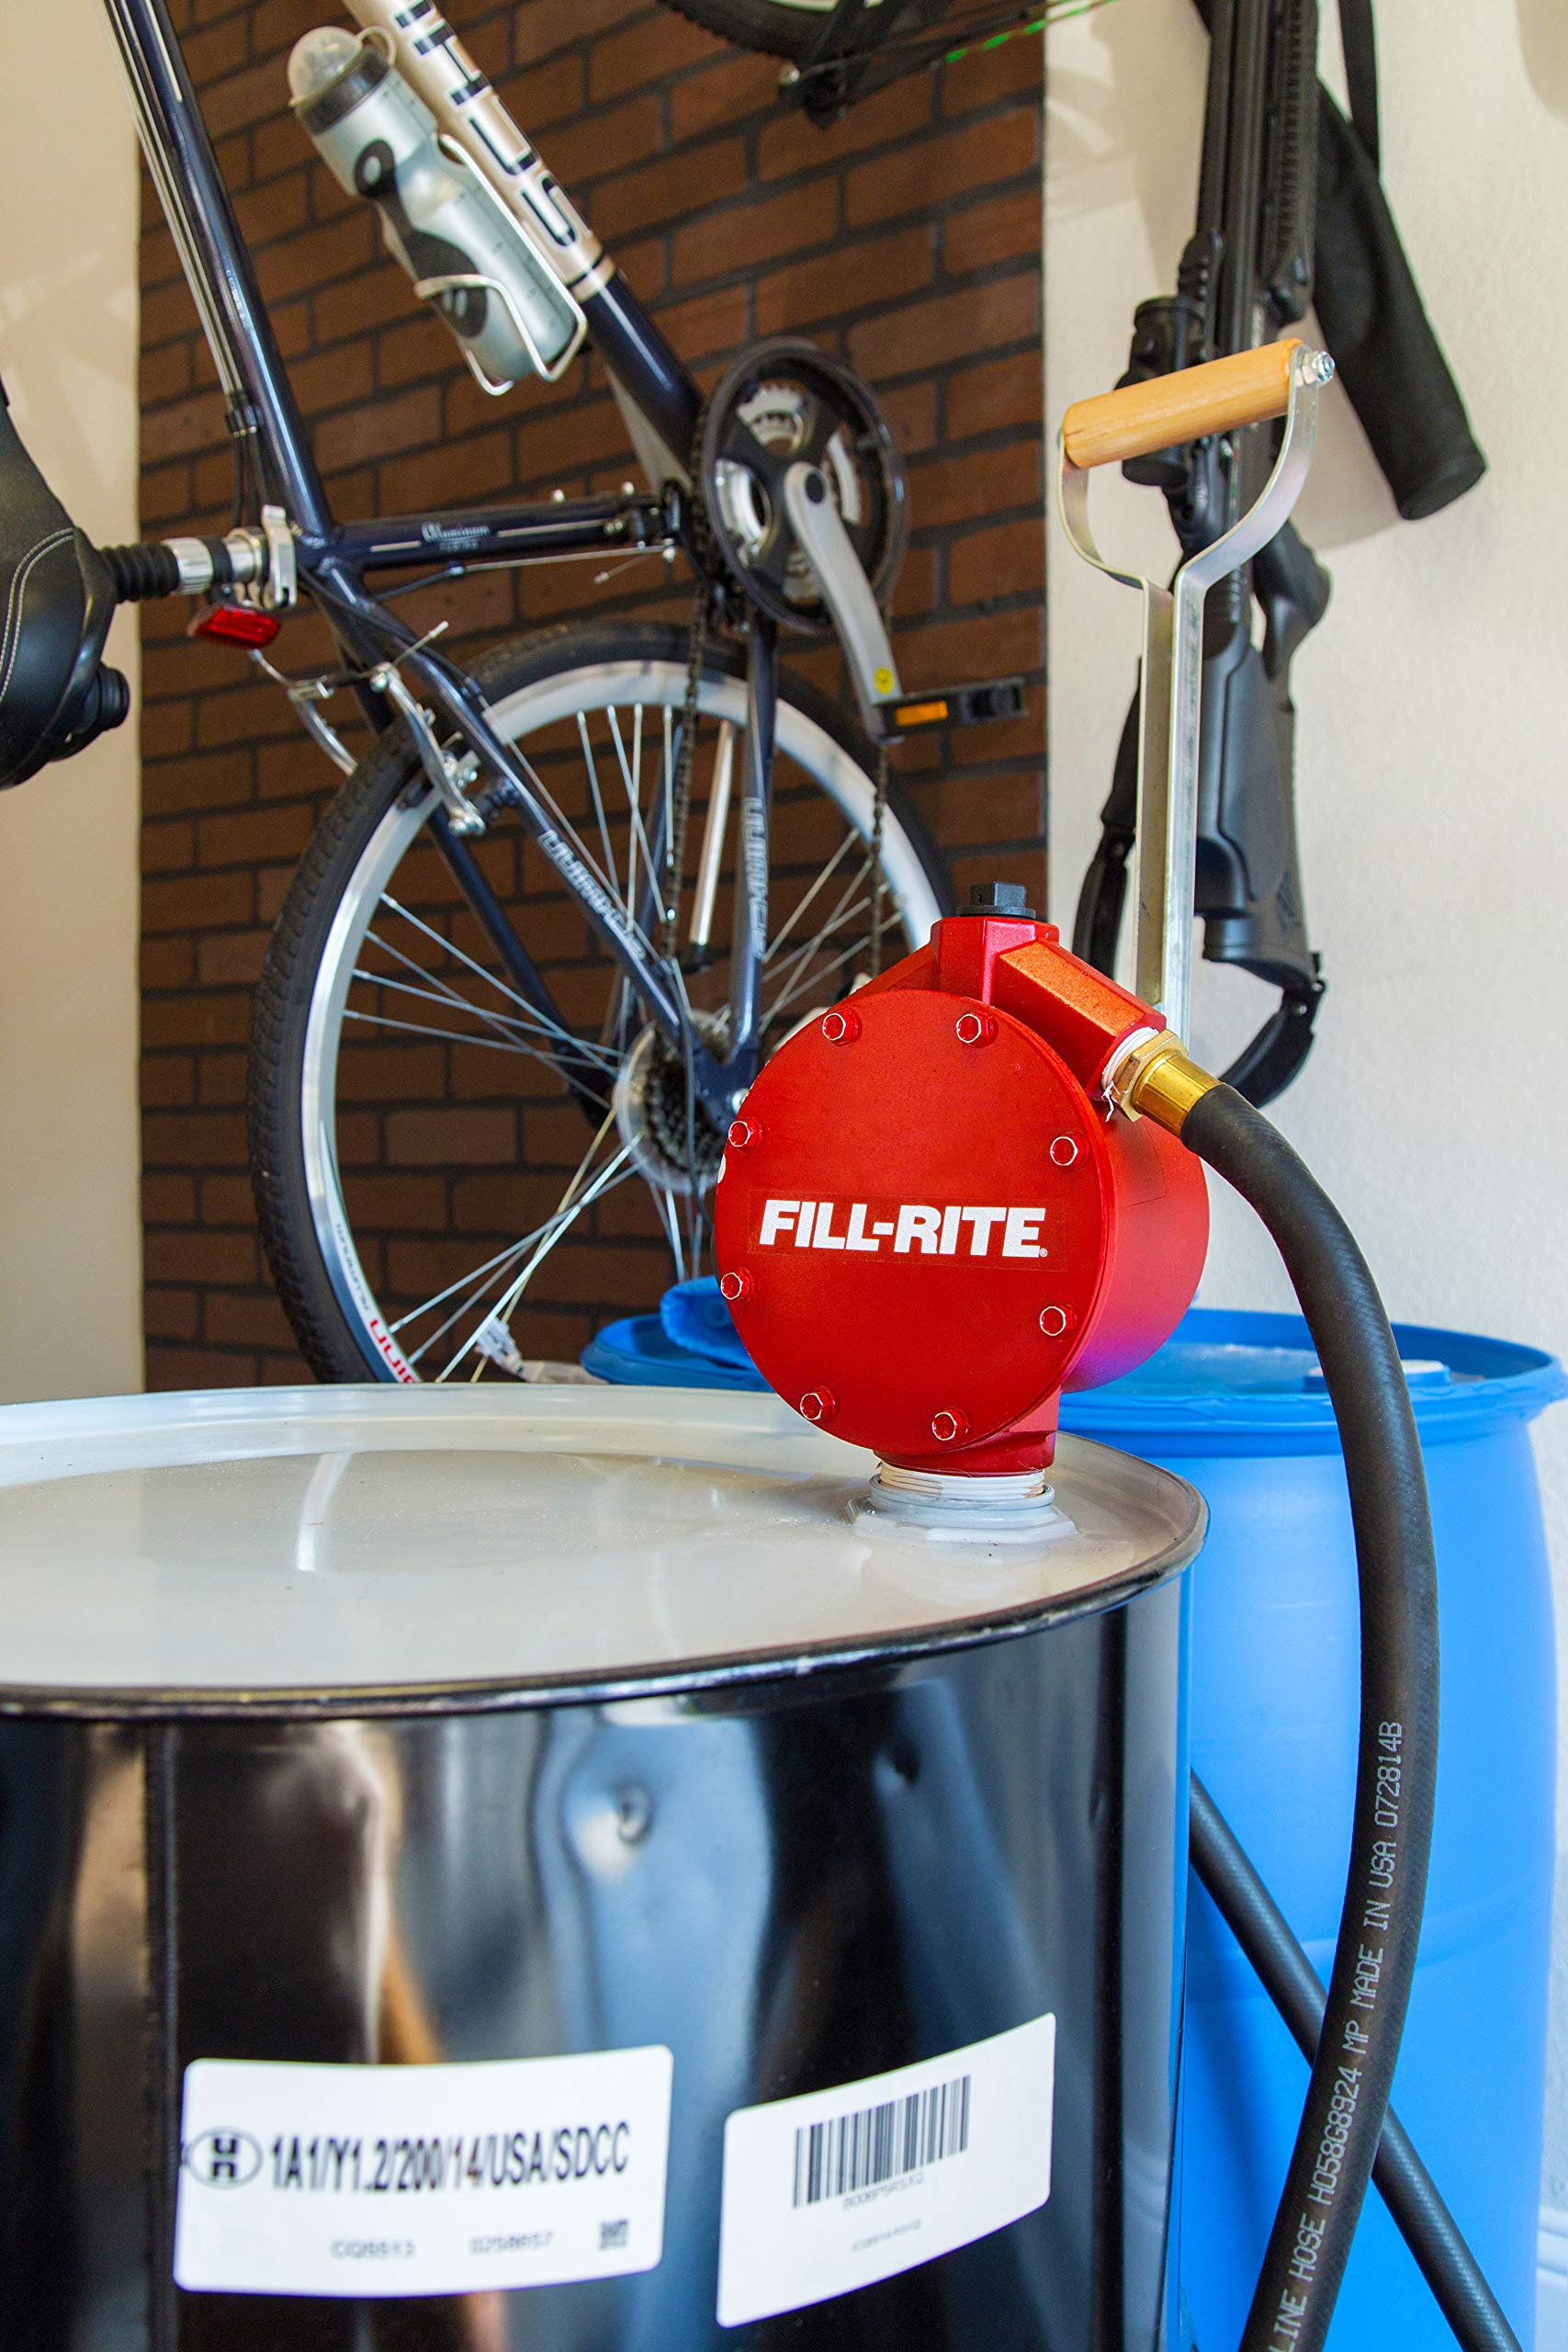 Fill-Rite FR152 Piston Hand Pump with Hose /& Nozzle Spout,Red